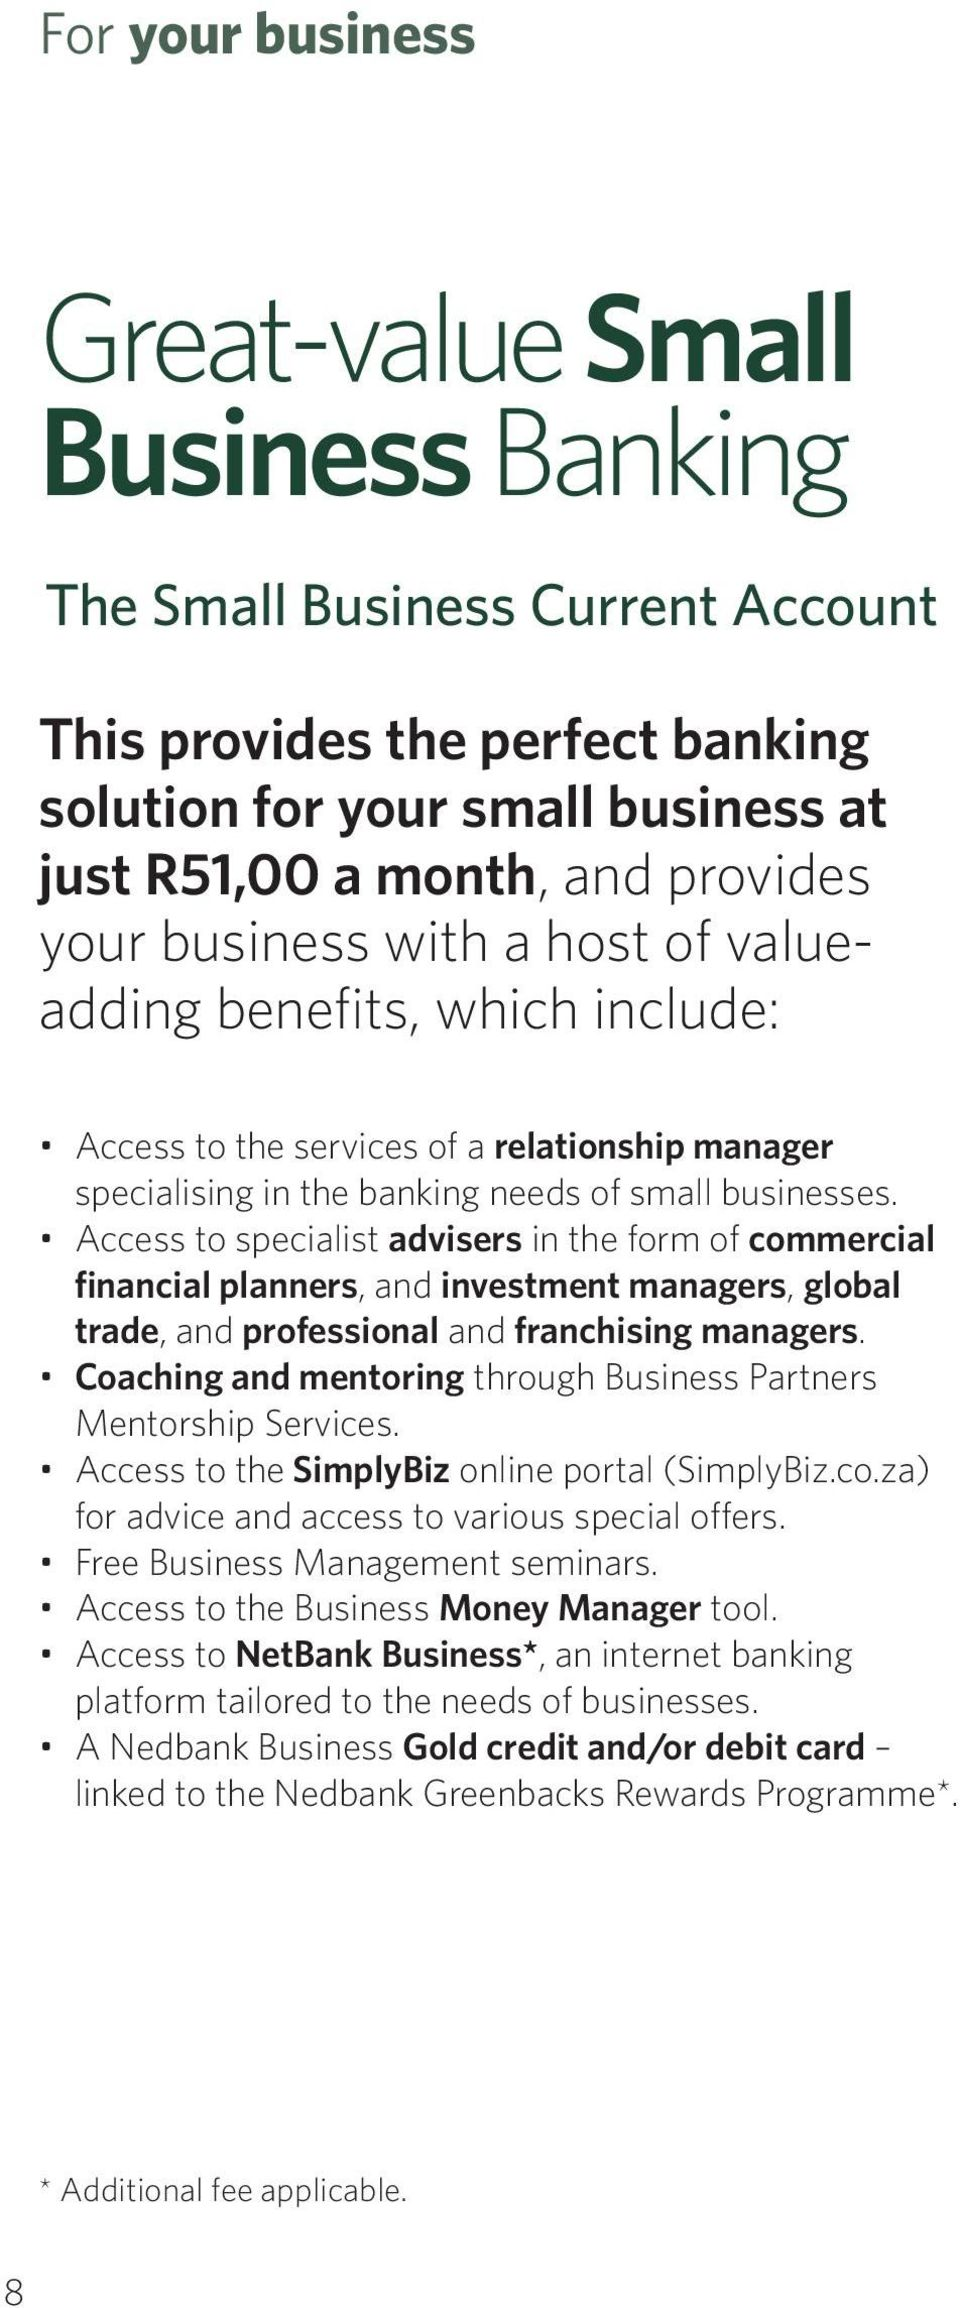 Access to specialist advisers in the form of commercial financial planners, and investment managers, global trade, and professional and franchising managers.